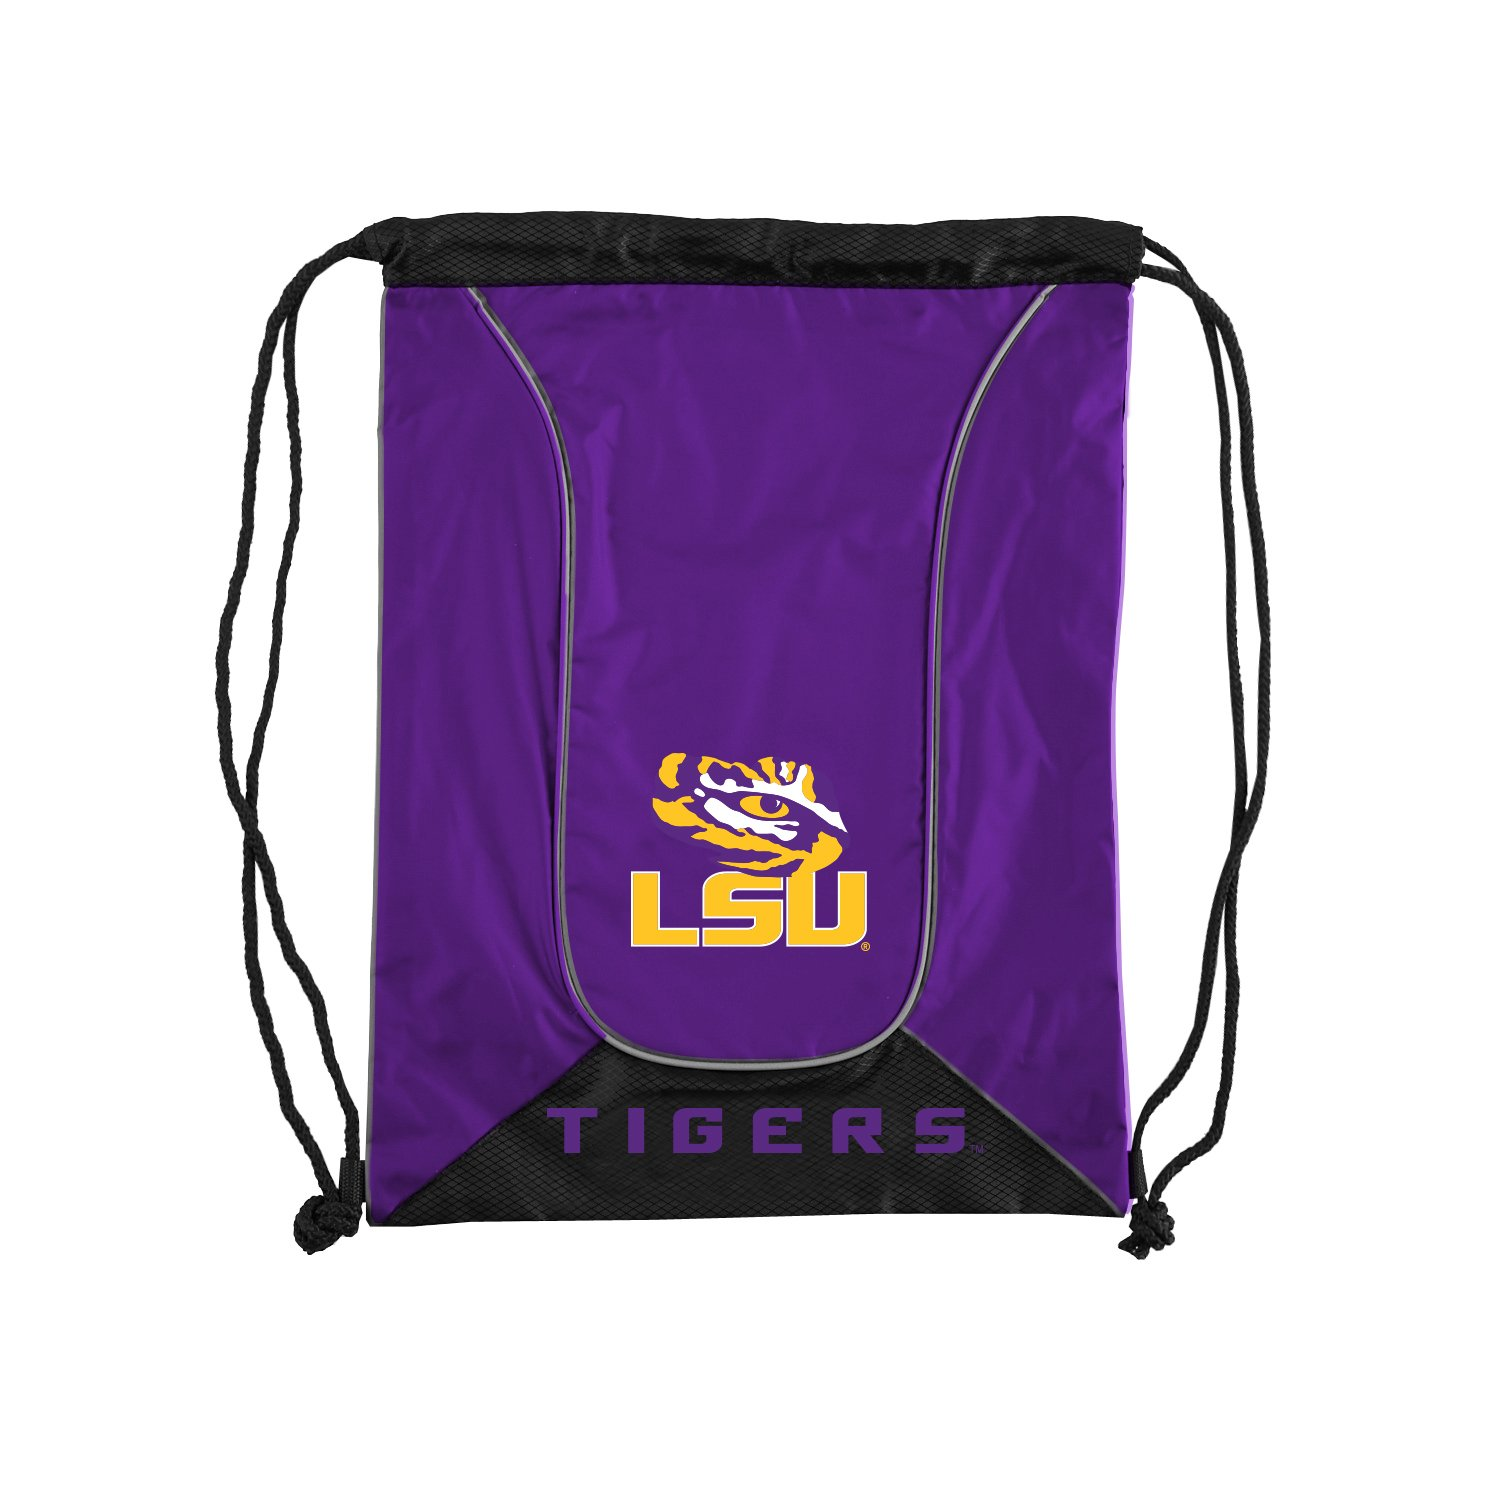 Officially Licensed NCAA Doubleheader Backsack